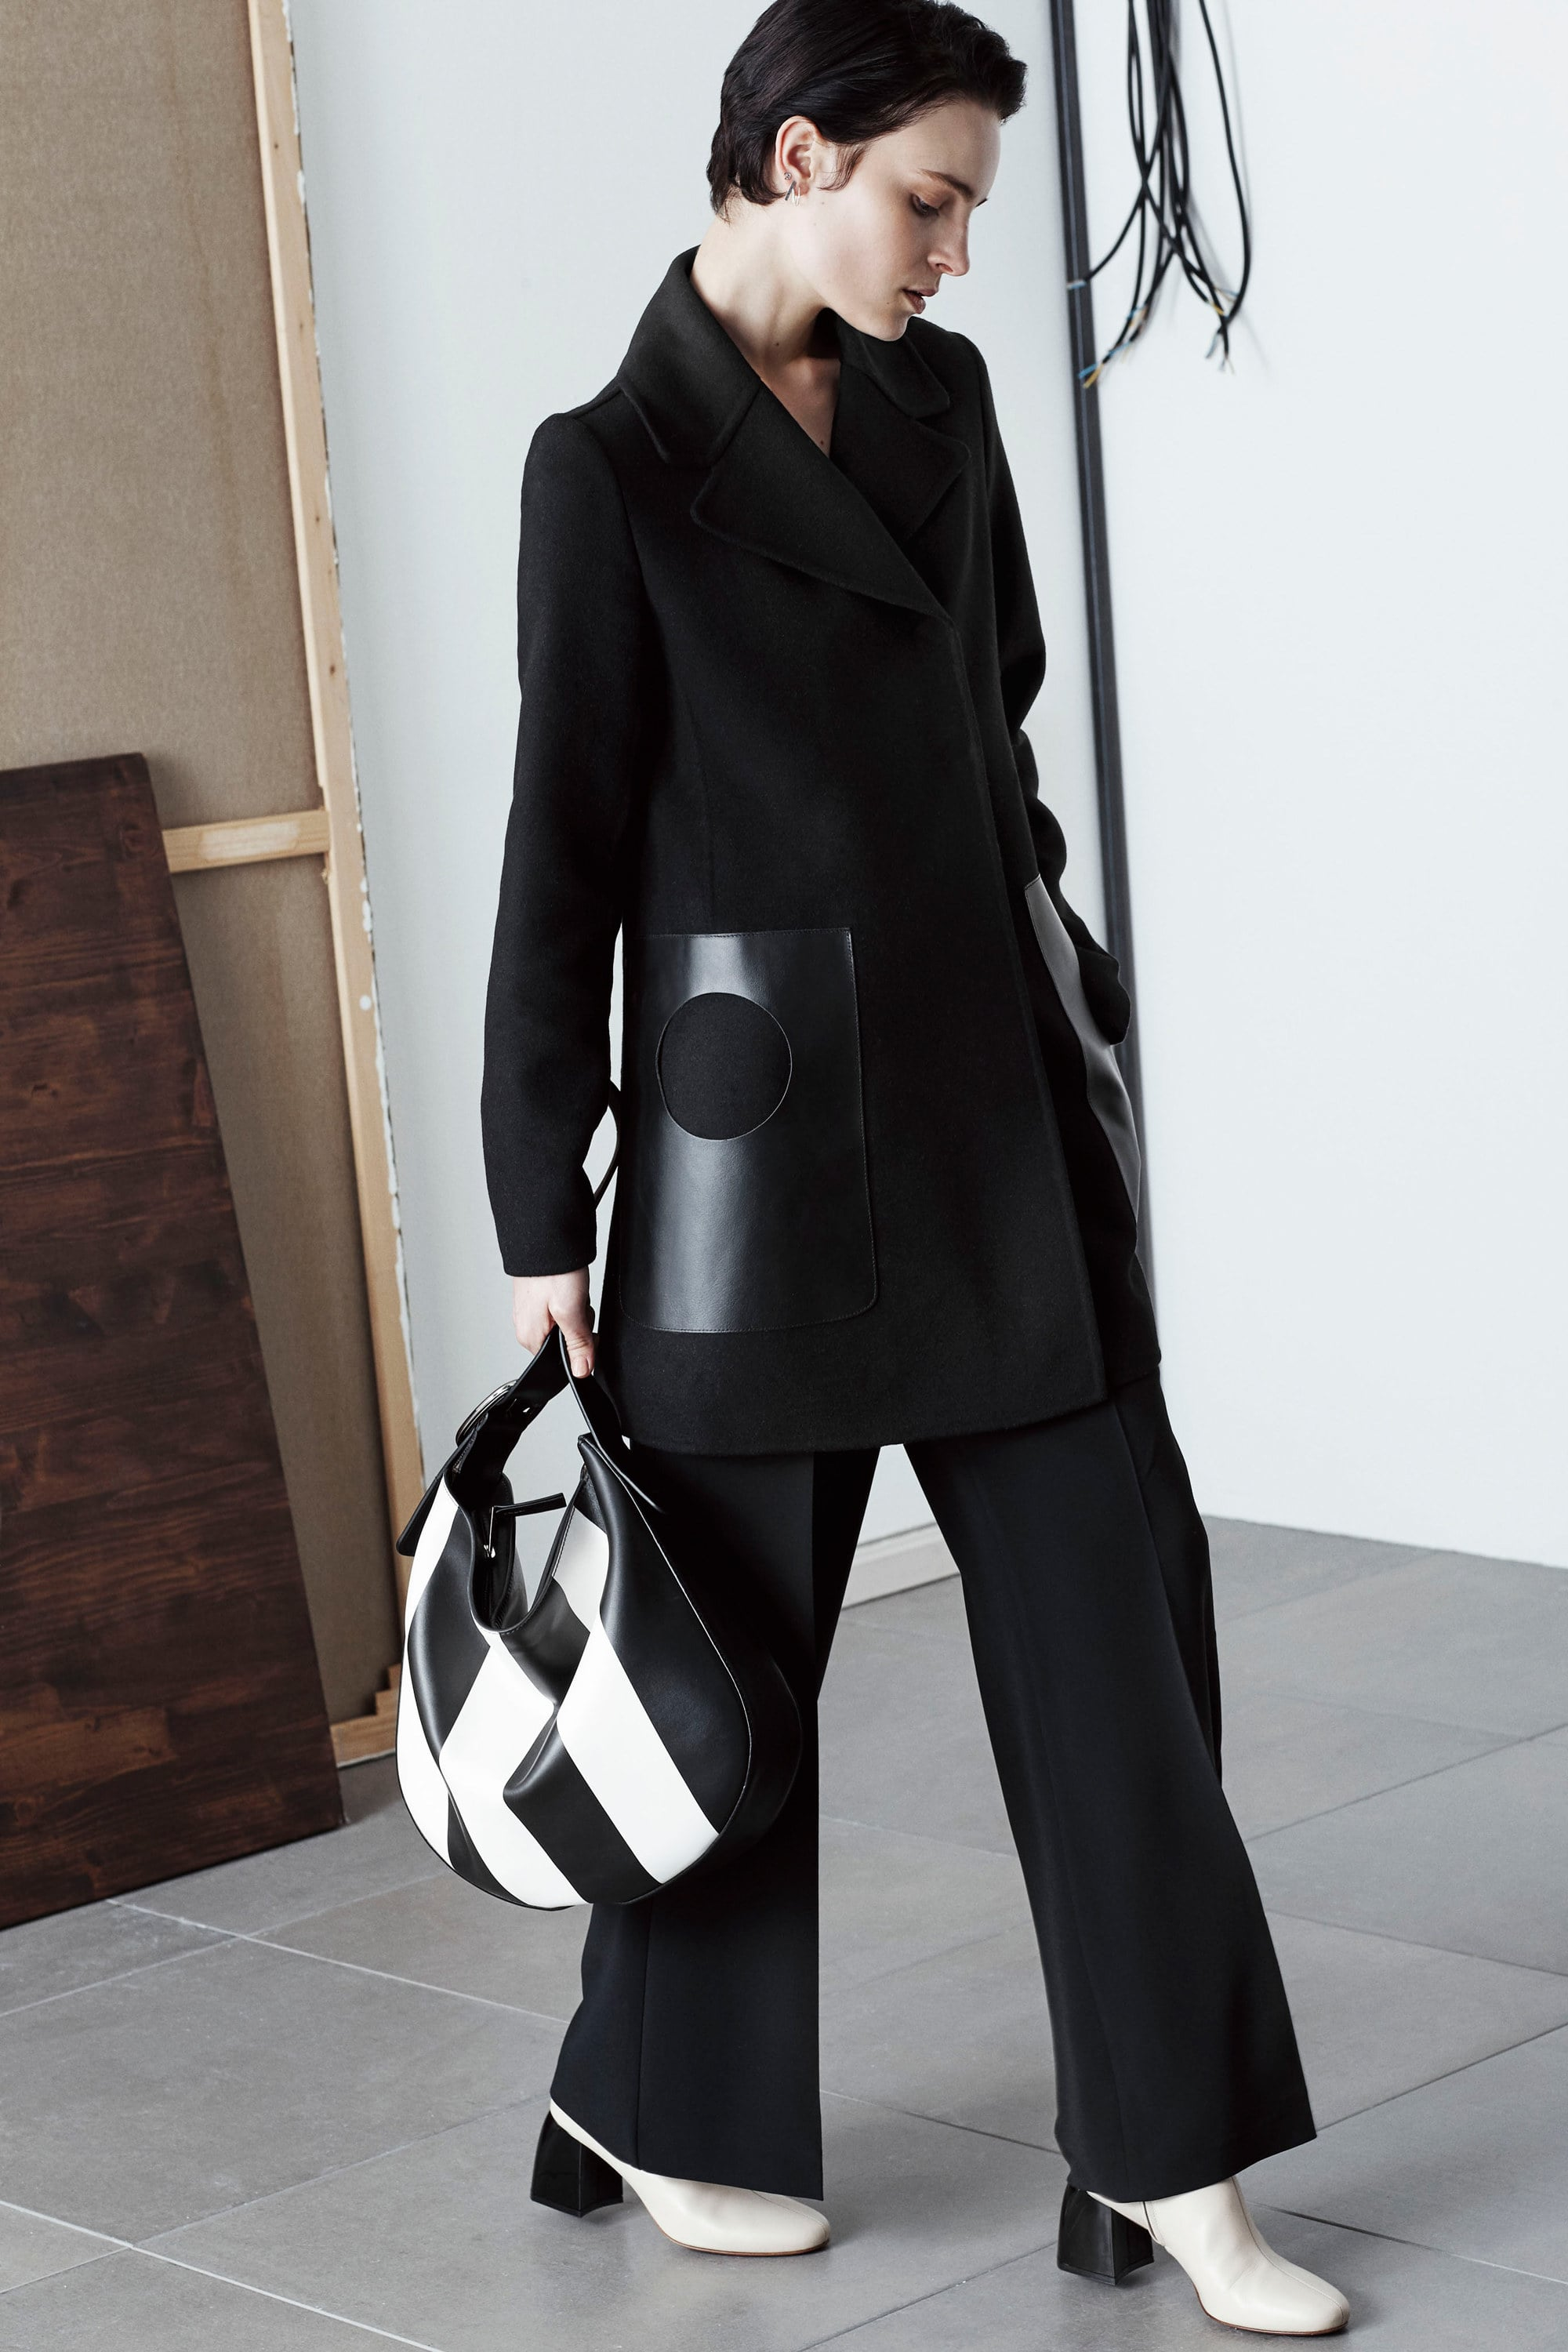 sportmax-pre-fall-2016-lookbook-13.jpg